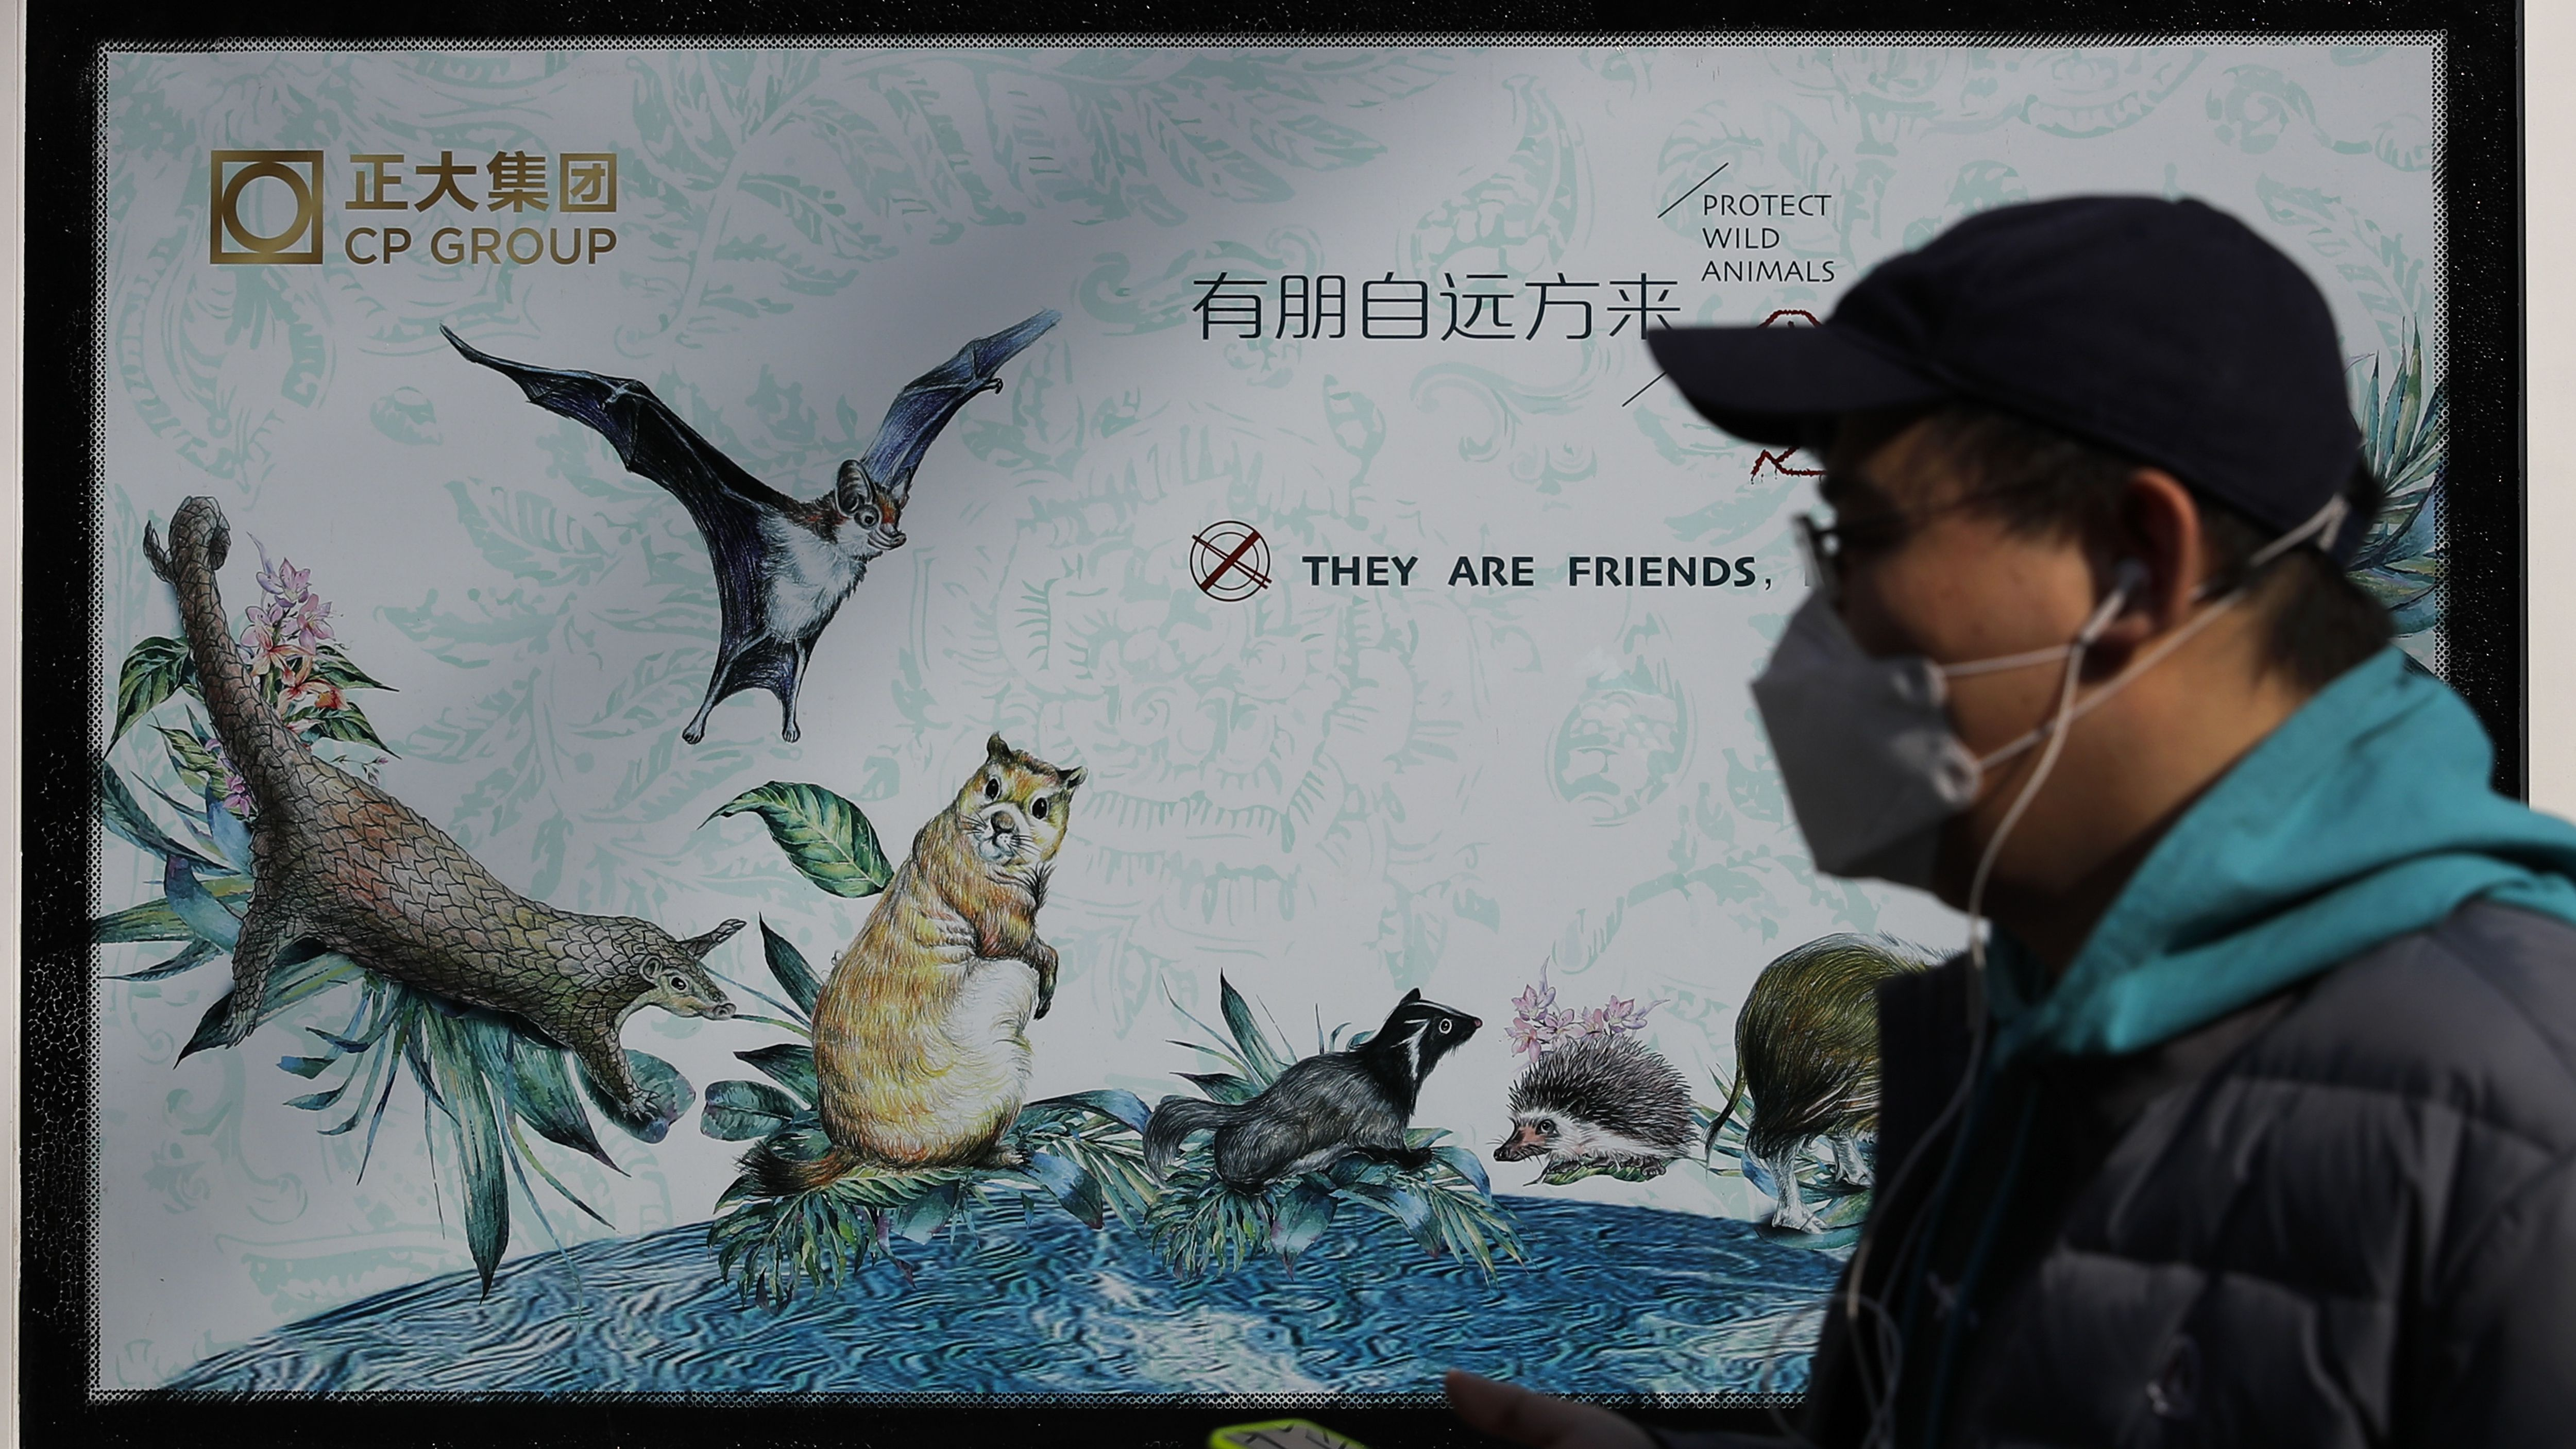 Shenzhen becomes first Chinese city to ban consumption of cats and dogs